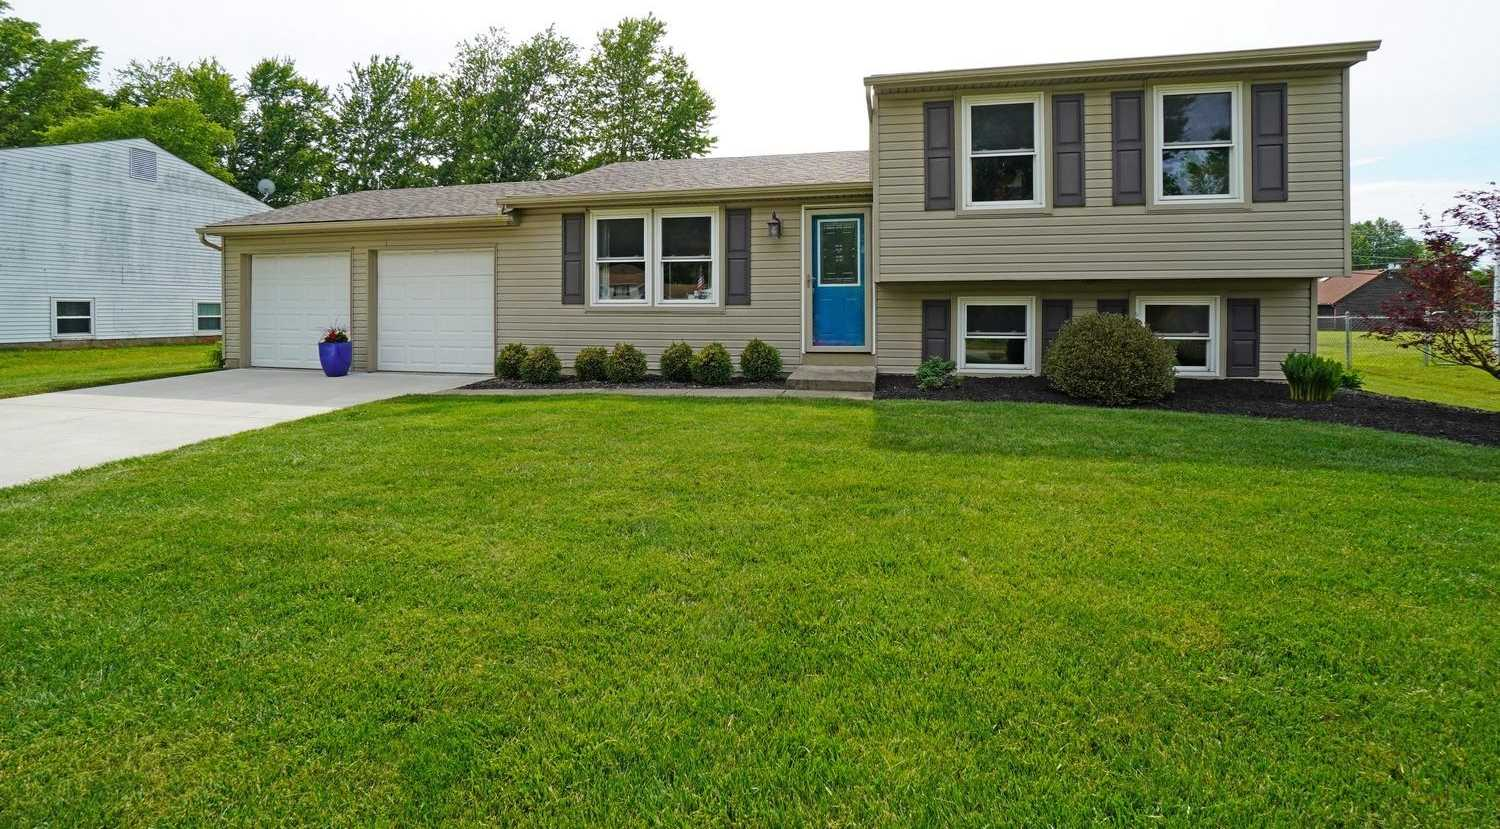 5881 Whippoorwill Hollow Drive Miami Twp,OH 45150 1665498